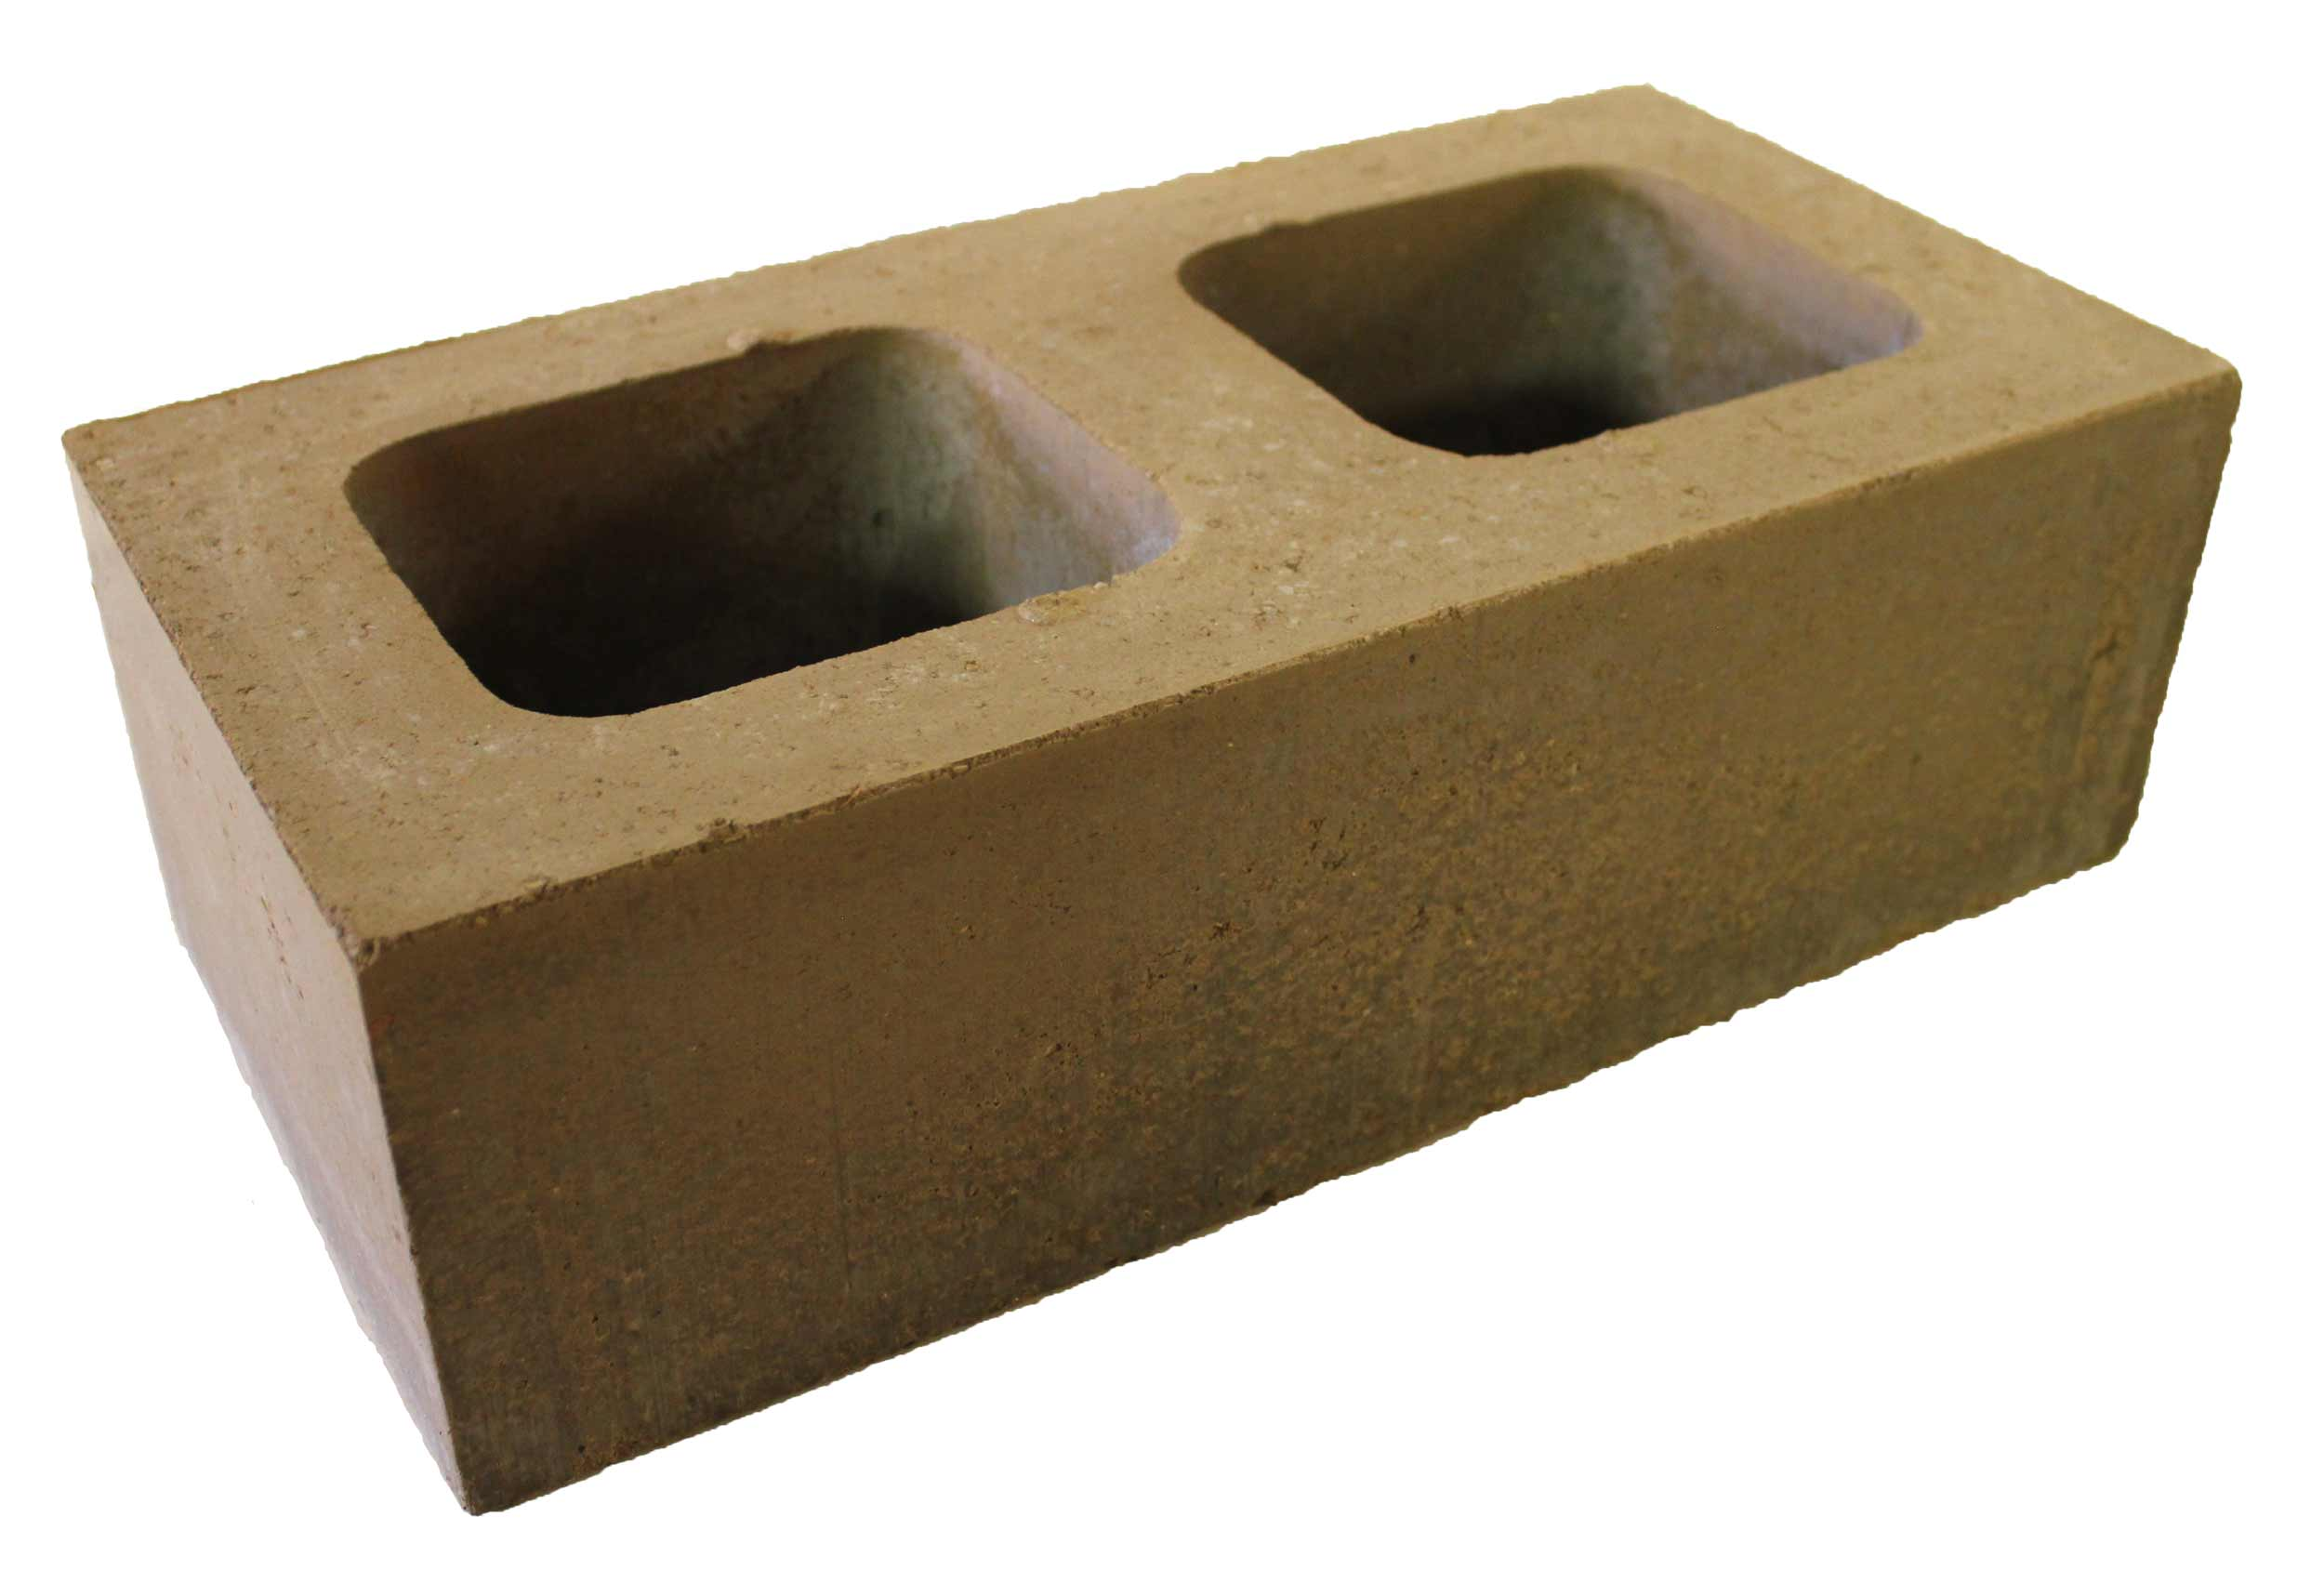 Sample structural masonry block produced by Watershed Materials from soil samples taken at the Kirkham Heights Apartments in the Inner Sunset neighborhood of San Francisco. The block achieved a final compressive strength of 2,905 psi and a density of 131 pounds per cubic foot averaged over three specimens. The beautiful appearance comes from Watershed Materials' ultra high compression technology combined with the native site material - a medium dense reddish-brown clayey sand with angular gravel and rock fragments. Blocks such as these are proposed to be produced on site at the Kirhkam Project redevelopment, made from repurposed excavation and used throughout the development site as structural and decorative masonry elements.